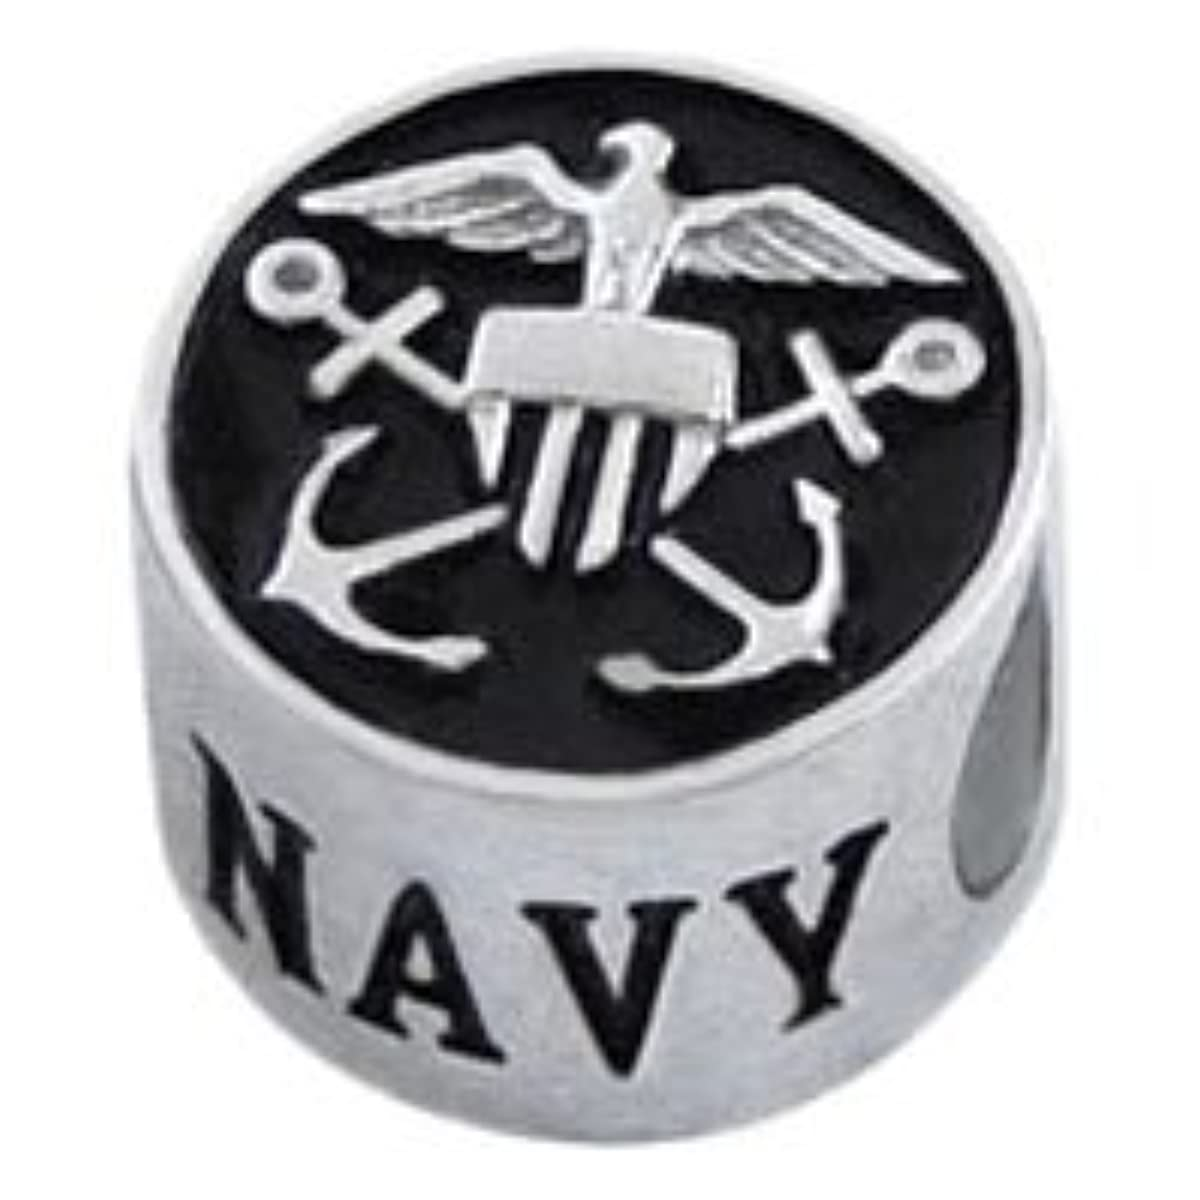 NAVY United States Military Sterling Silver 925 European Style Charm Bead